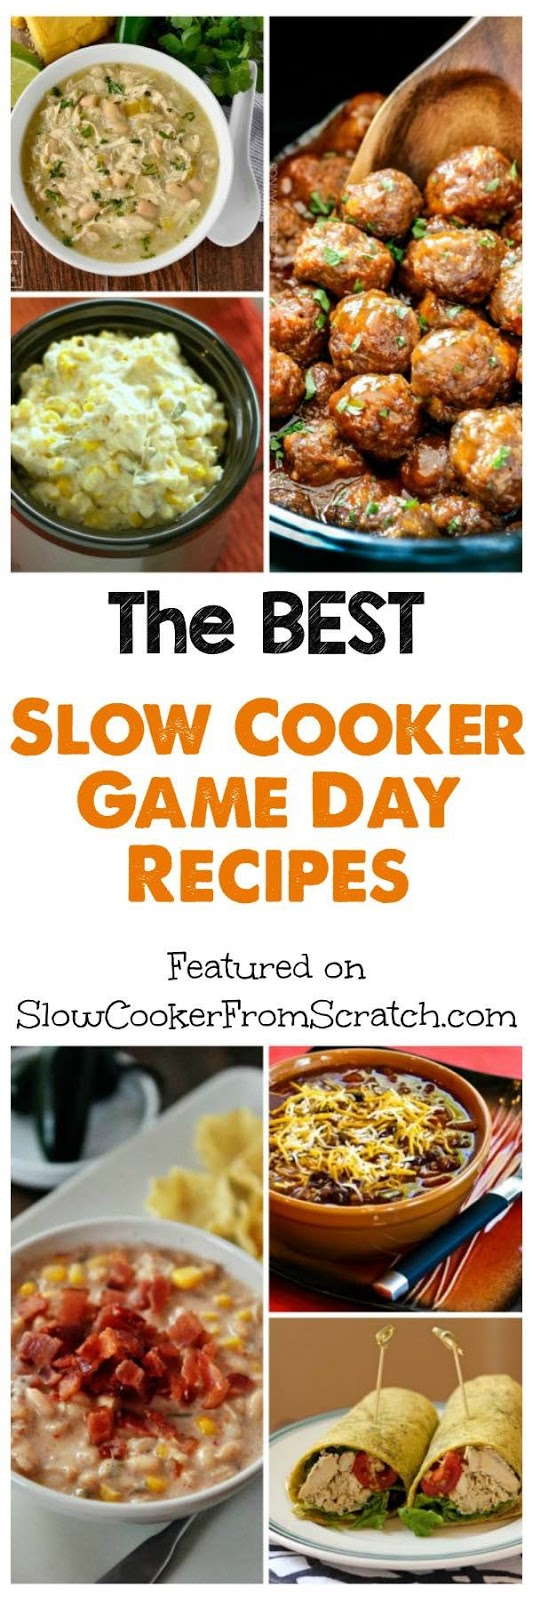 Don't buy a slow cooker before reading these manualaustinnk4.gq the Best Price.· Free Shipping.· Get the Best Price.· We're the Cooking ExpertsCategories: Appliances, Automotive, Baby & Kids, Beauty & Personal Care and more.